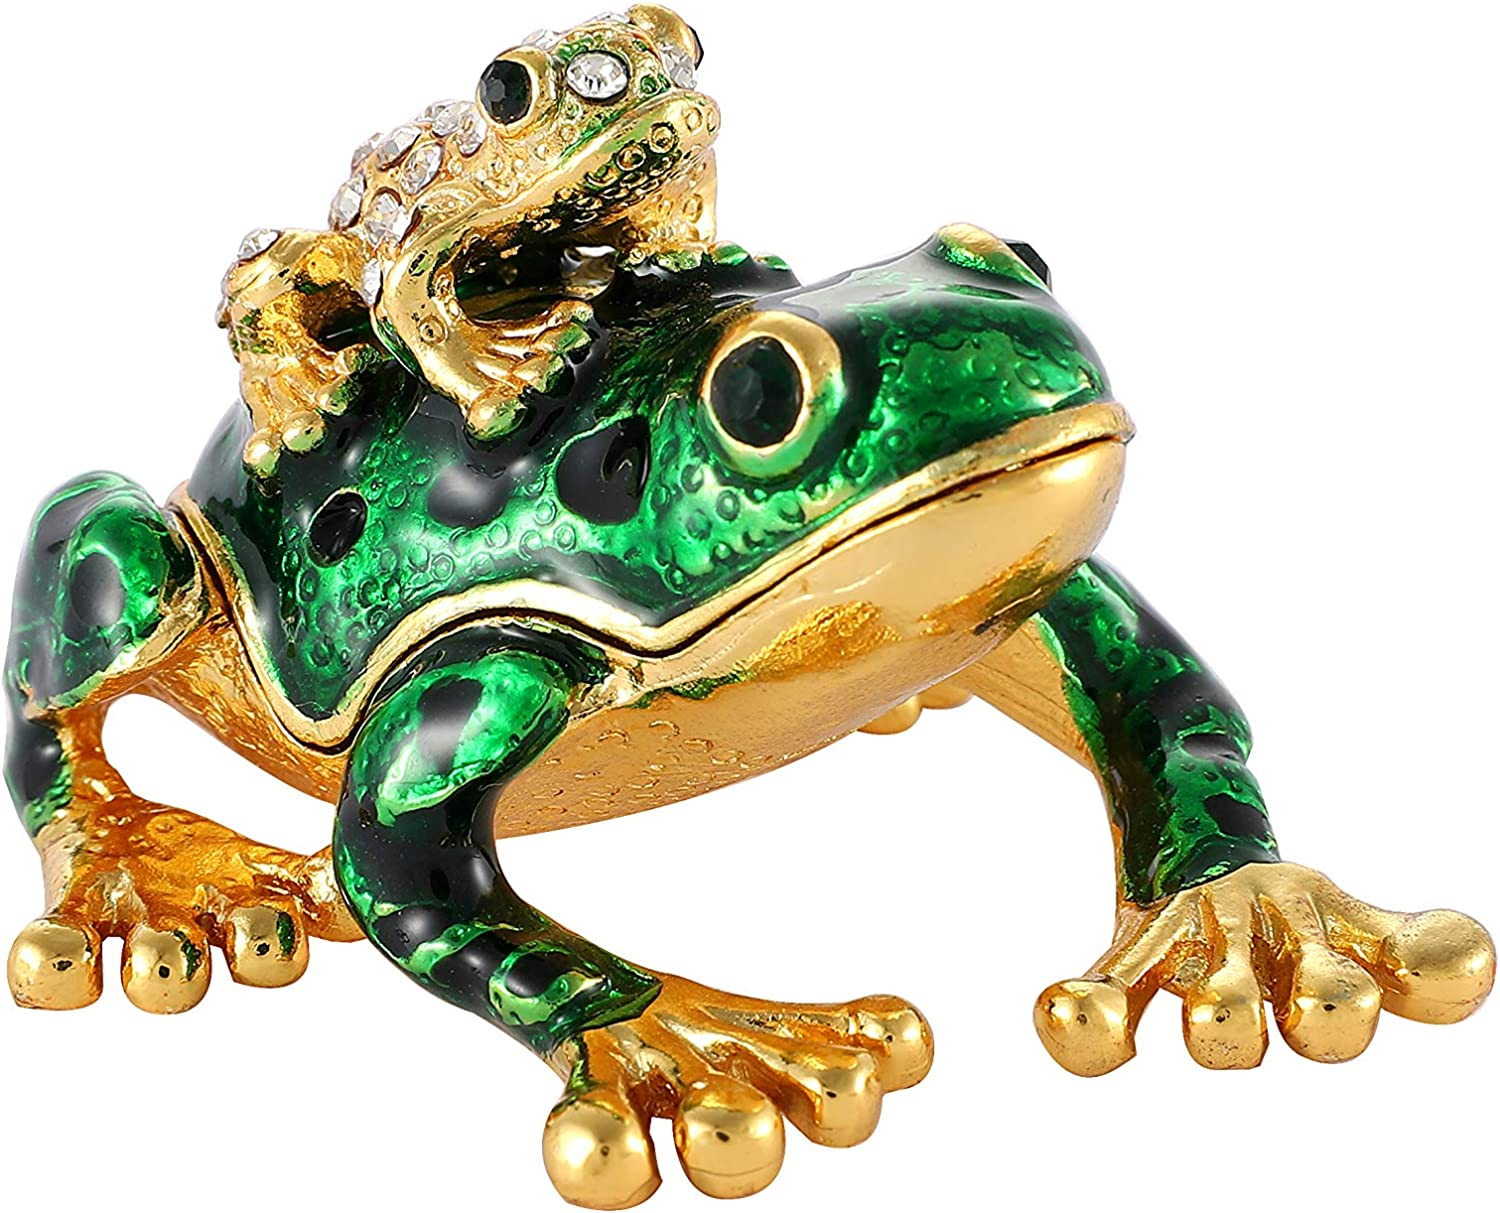 Amazon Com Qifu Hand Painted Gute Frog Jeweled Trinket Box With Hinged Unique Gift For Home Decor Home Kitchen